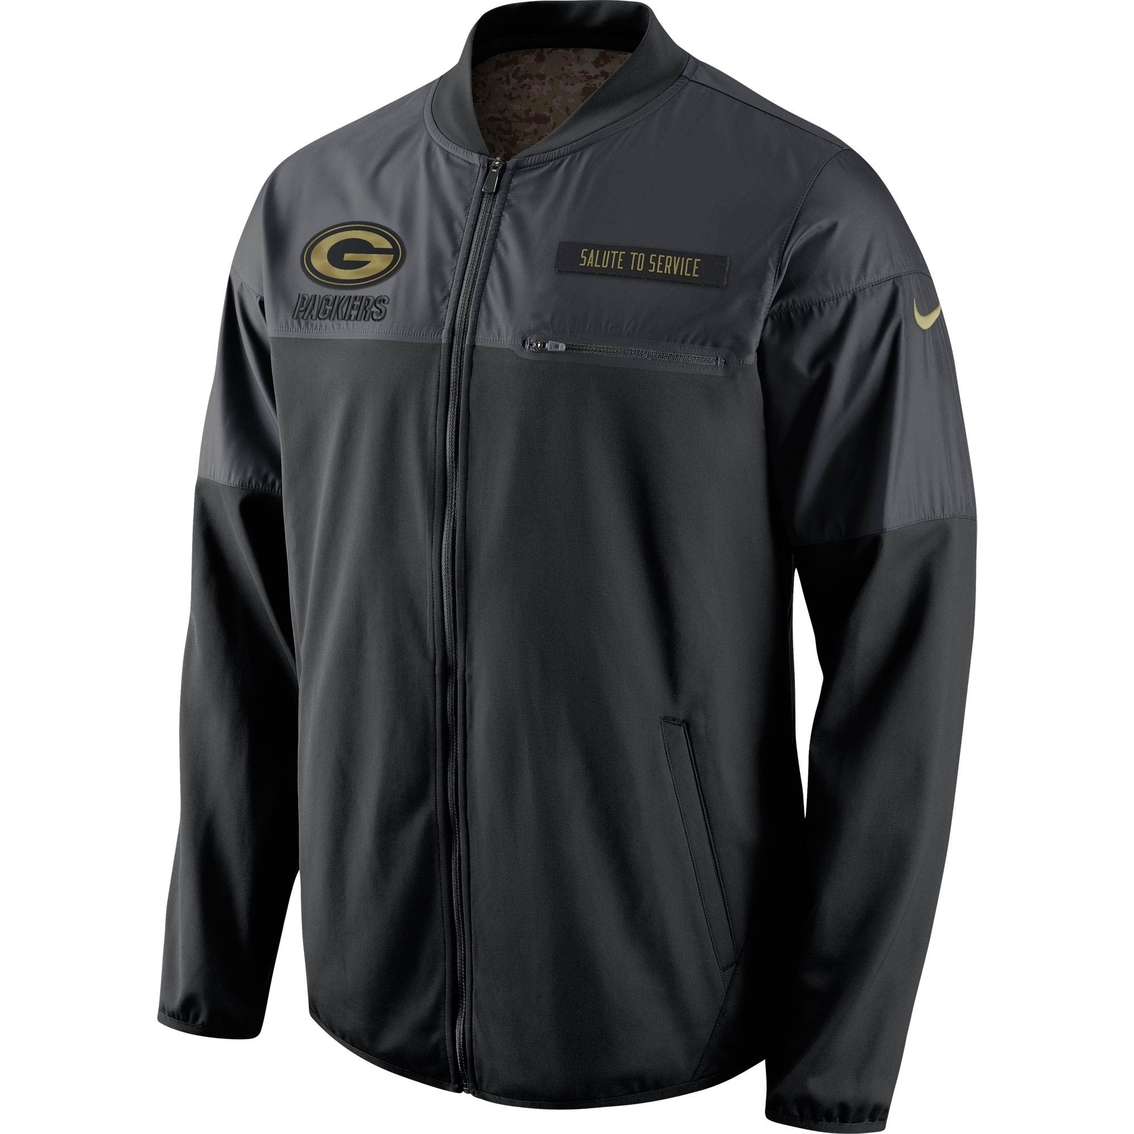 new arrival 29cd4 4c27c Nike Nfl Green Bay Packers Salute To Service Jacket ...